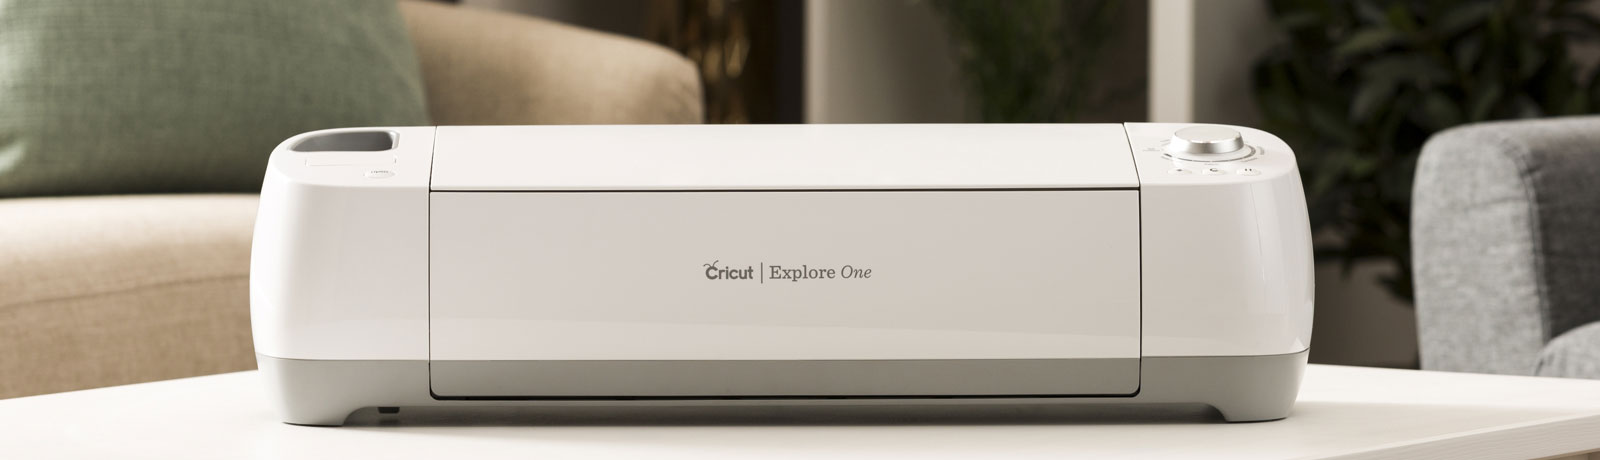 Cricut Explore One